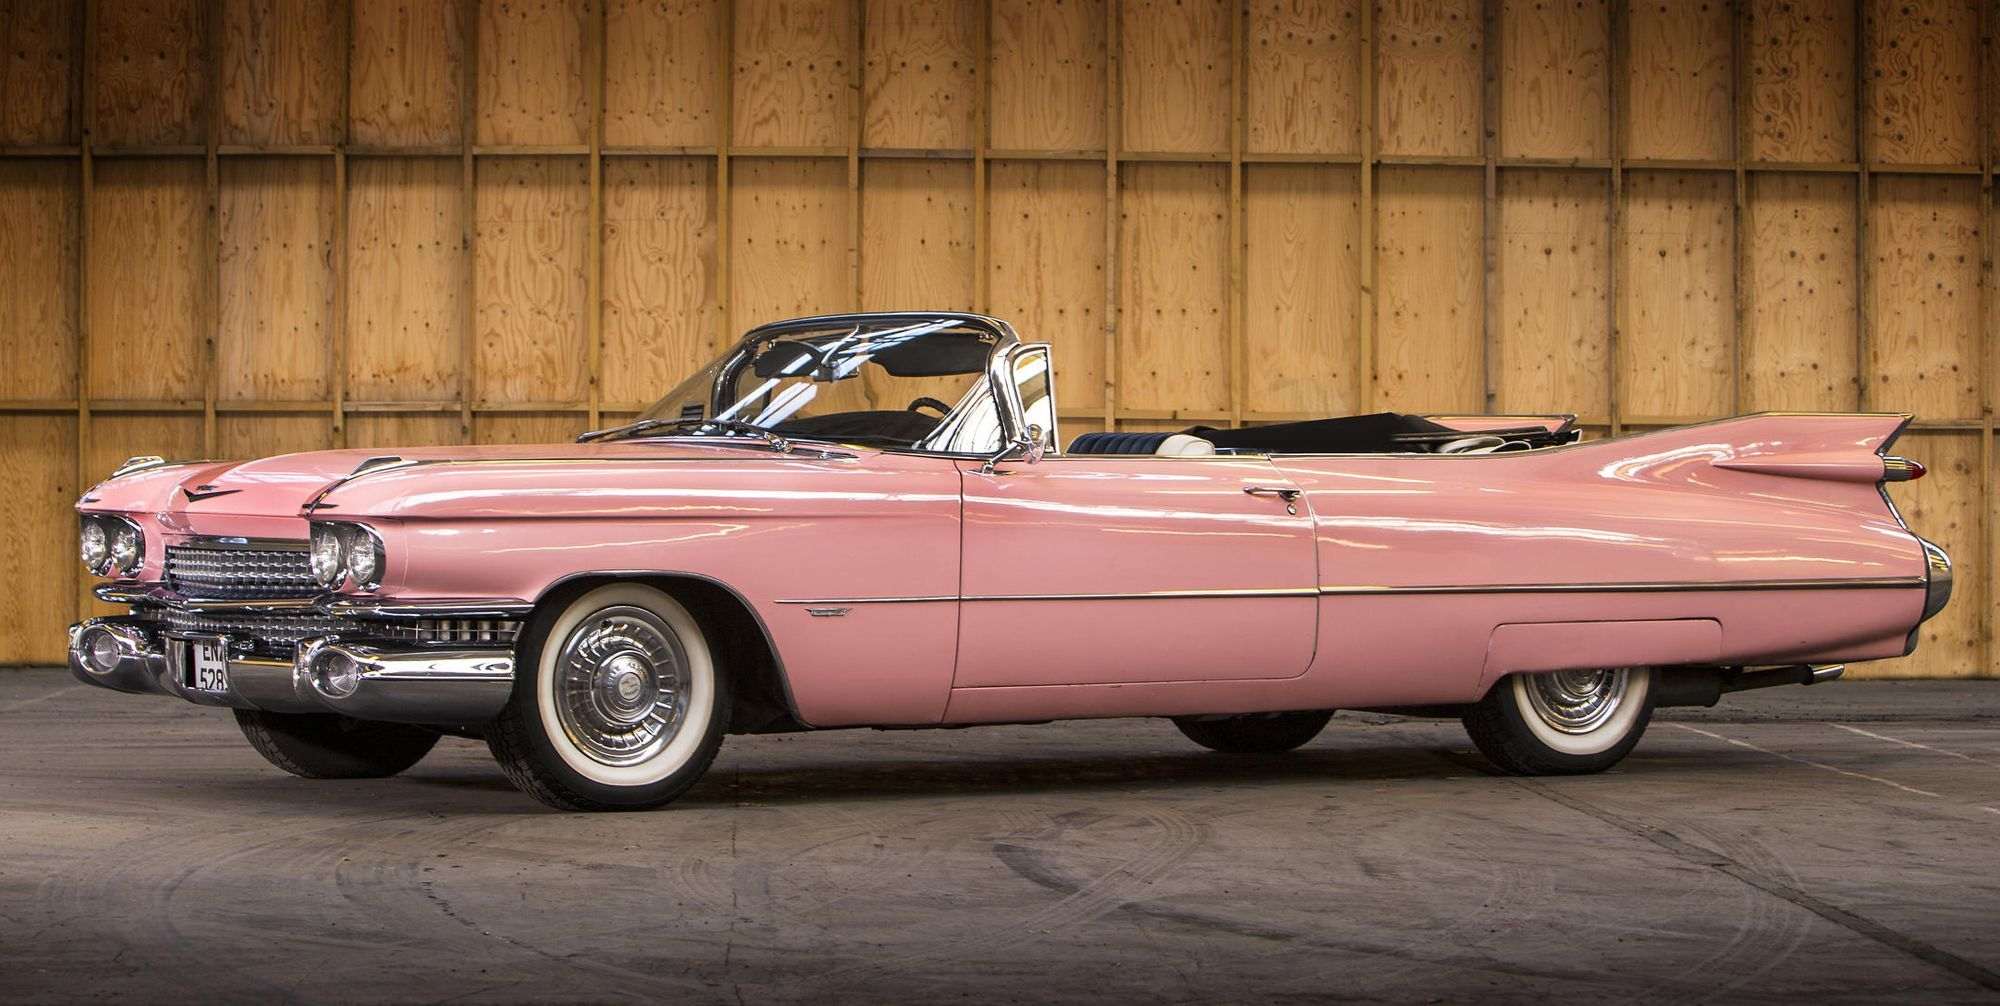 Though cadillac never offered pink as a factory option in that hasn t kept pink 1959 cadillac convertibles from becoming iconic expressions of postwar